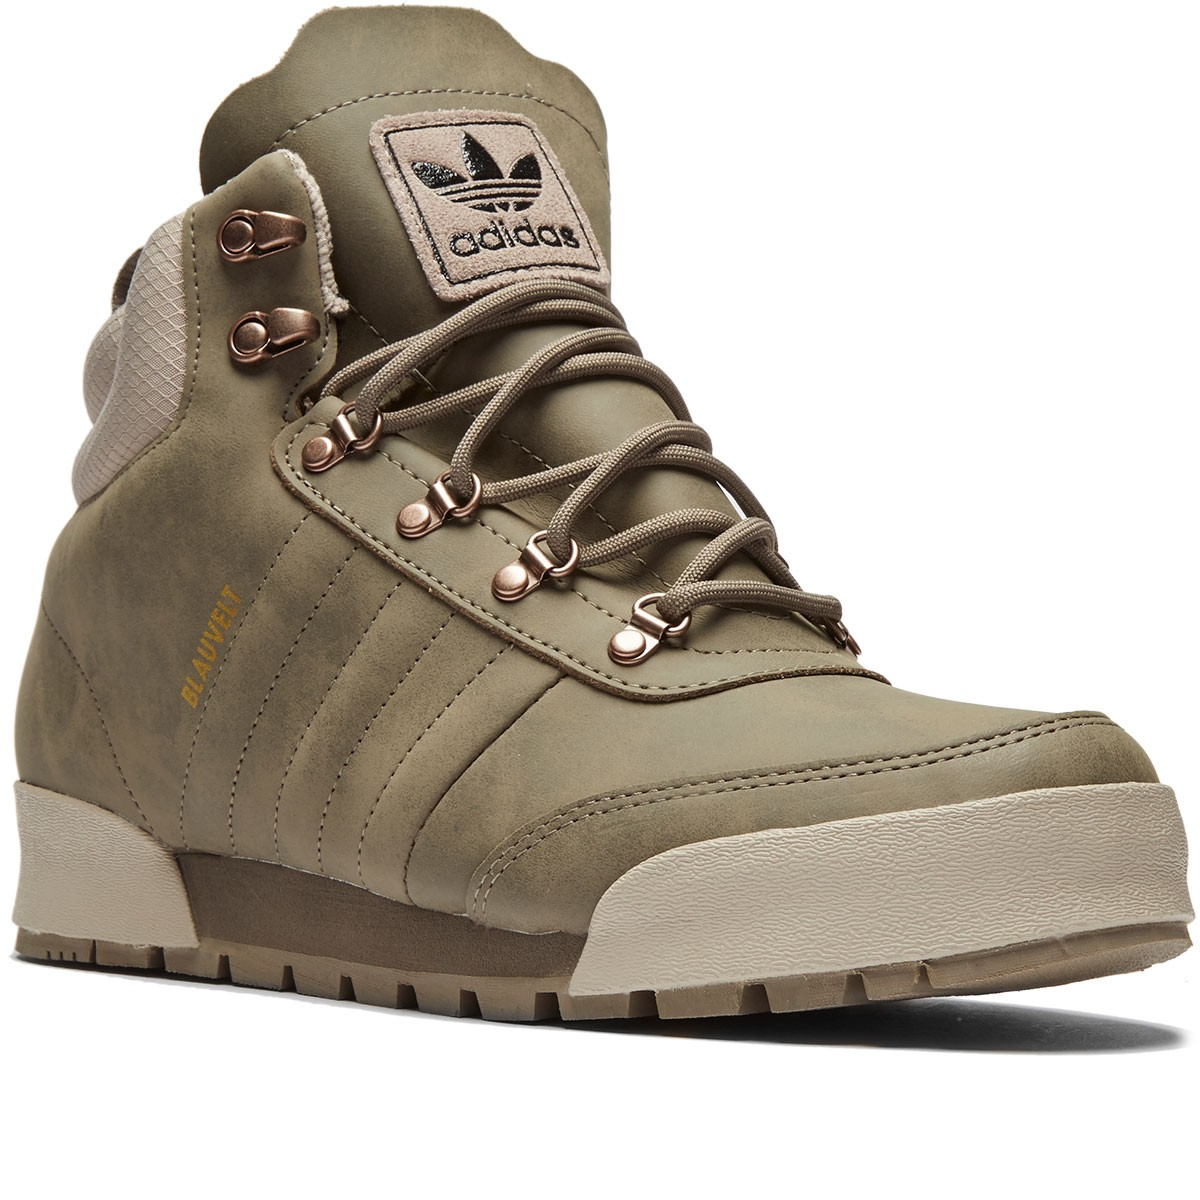 Adidas Jake Boot 2.0 Shoes - Simple Brown/Vapour Grey/Black - 8.0